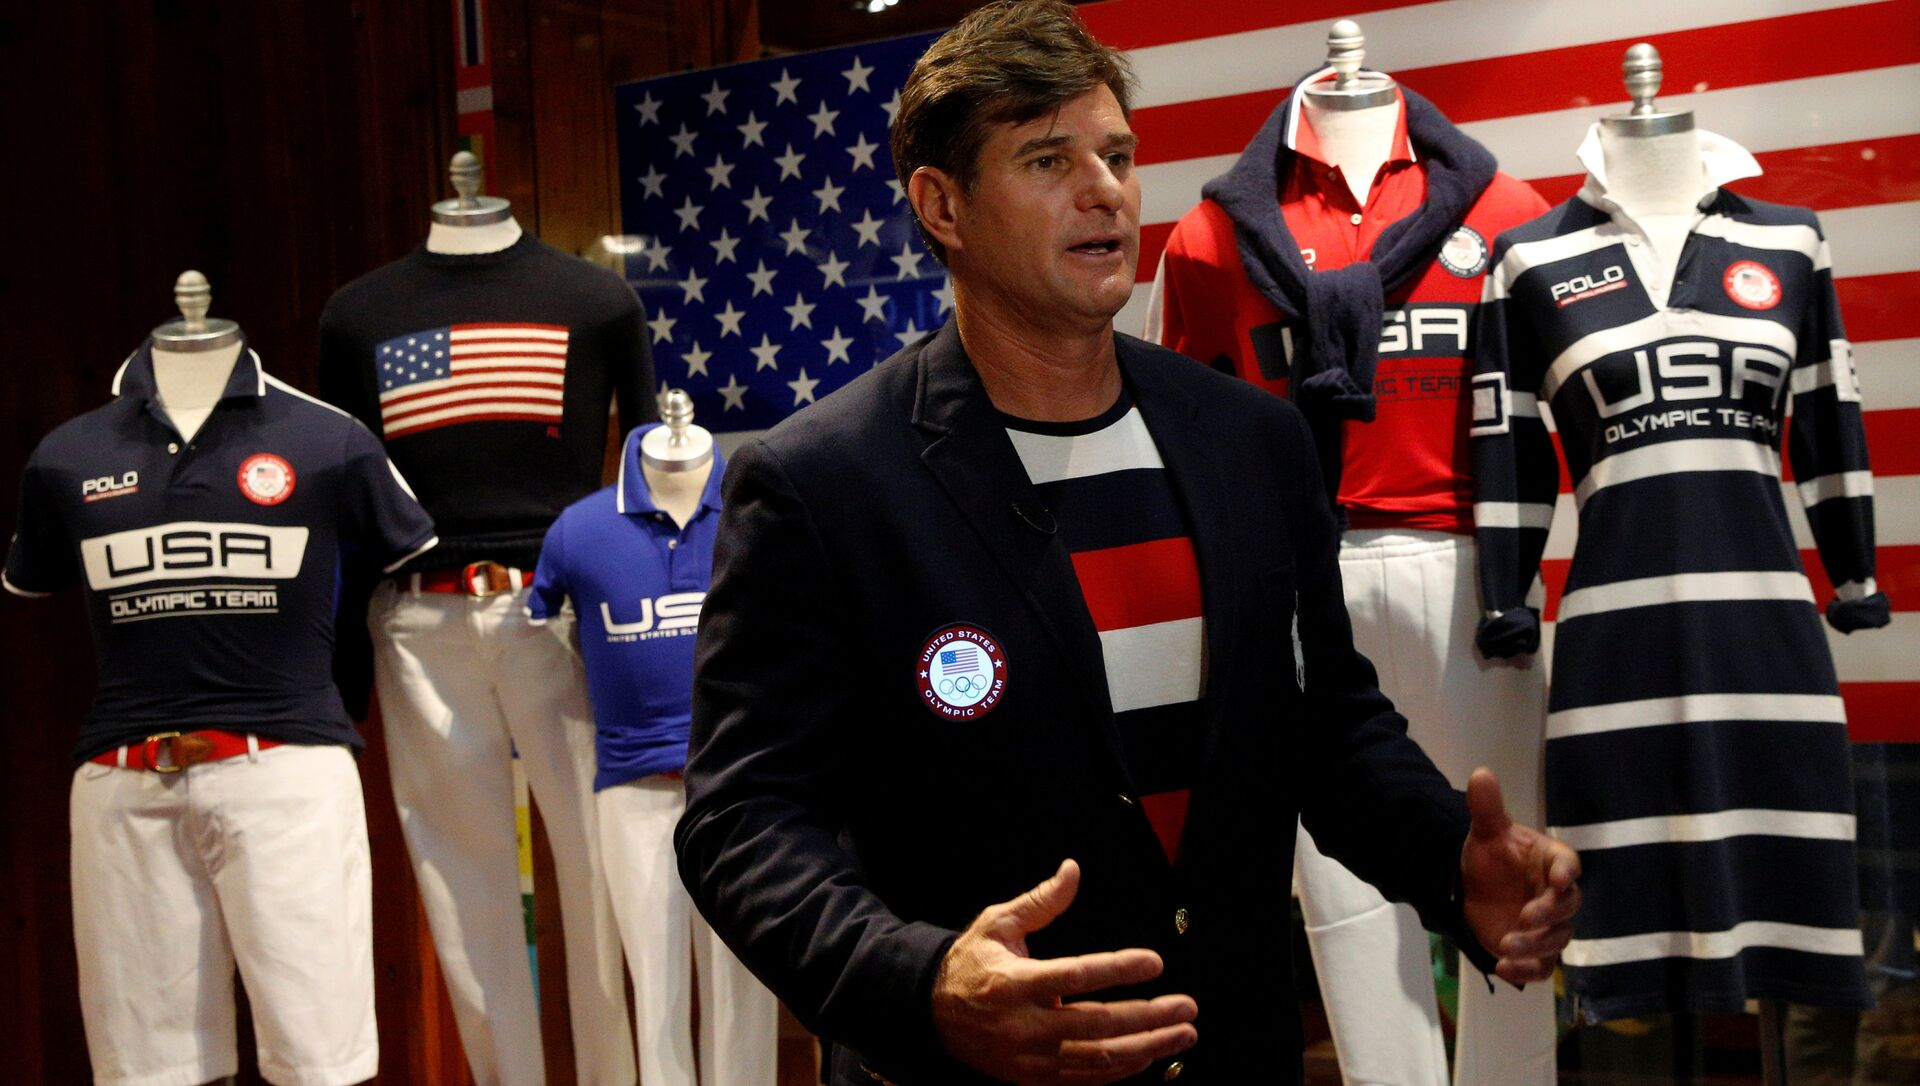 Cliff Meidl, two-time U.S. Olympic athlete, models the official Team USA Opening Ceremony flag bearer outfit which will include special electroluminescent panels, at the Polo Ralph Lauren store in New York City, U.S., July 29, 2016 - Sputnik International, 1920, 24.07.2021